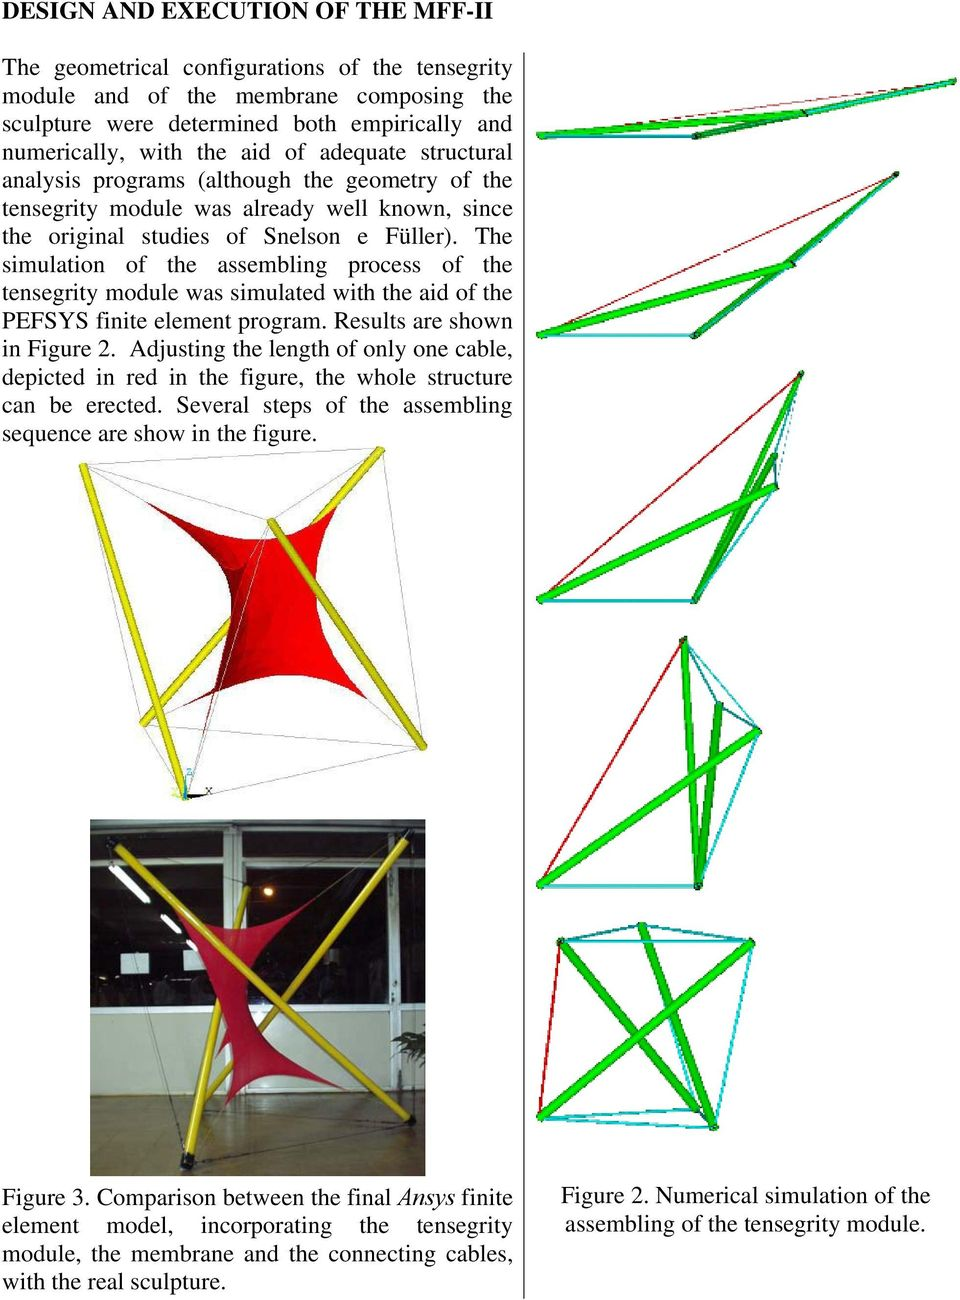 The simulation of the assembling process of the tensegrity module was simulated with the aid of the PEFSYS finite element program. Results are shown in Figure 2.